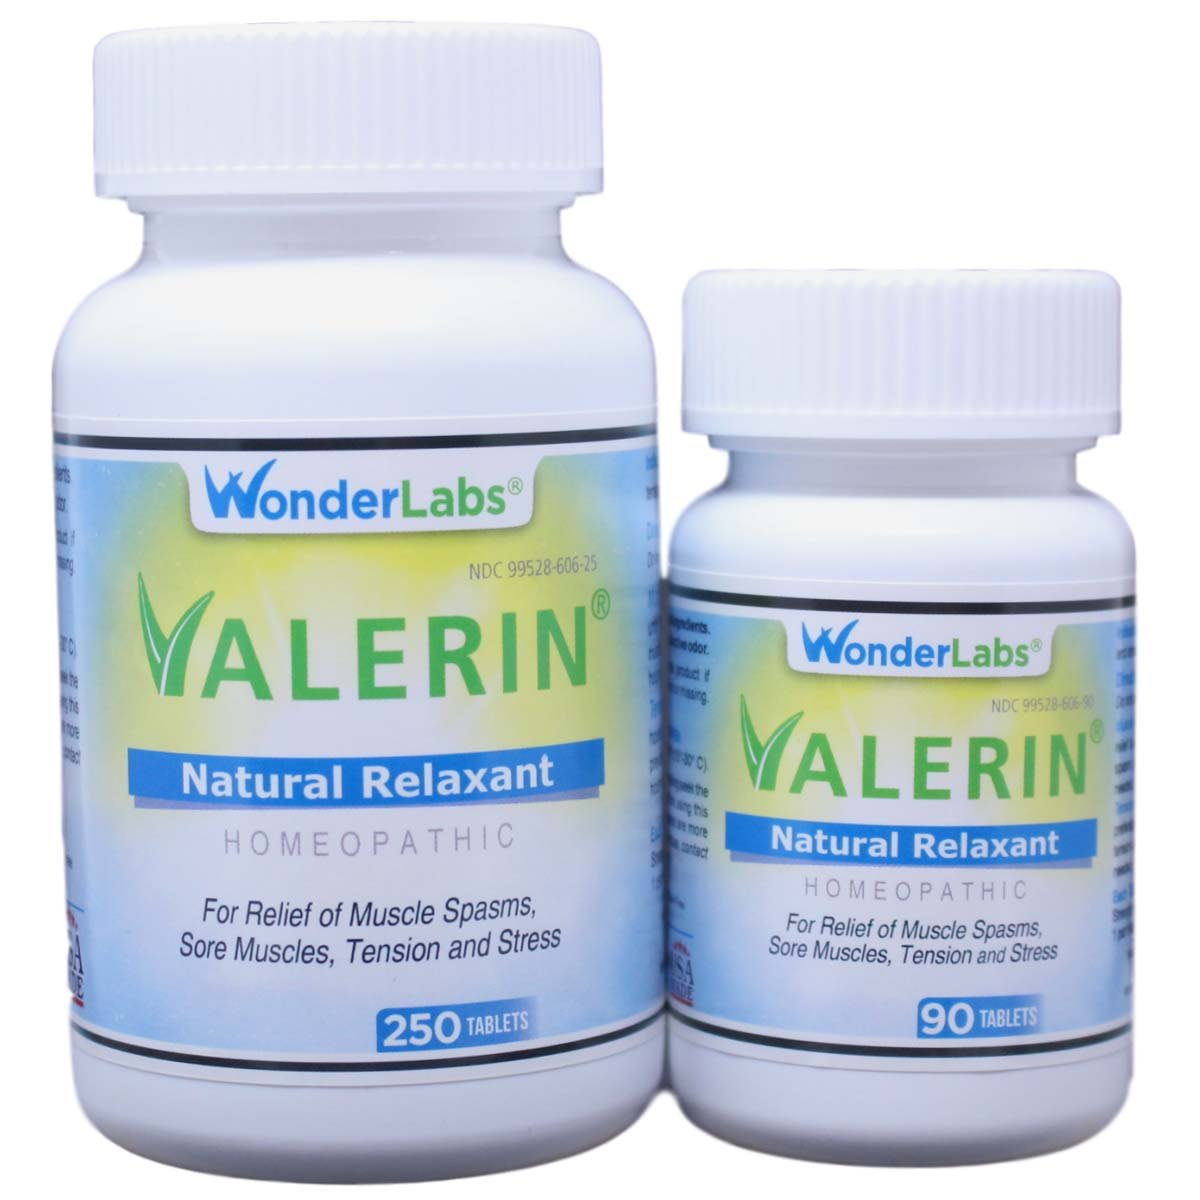 Leg Cramps and Muscle Cramps - All-Natural Relaxant Valerin - 340 Tablets